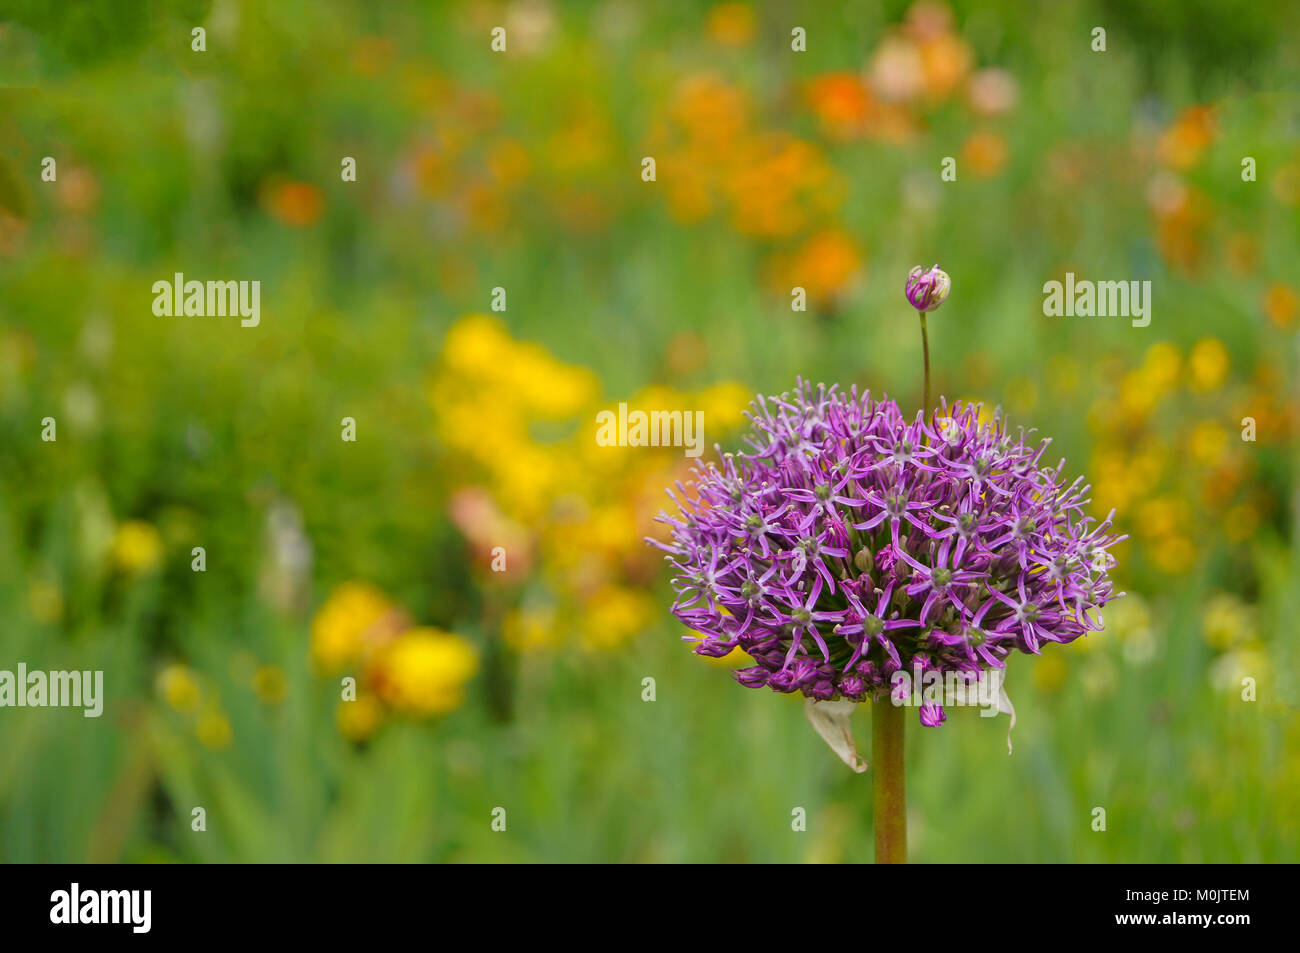 Single large purple allium flower, with a tiny allium flower growing from it, against a diffuse green and yellow - Stock Image